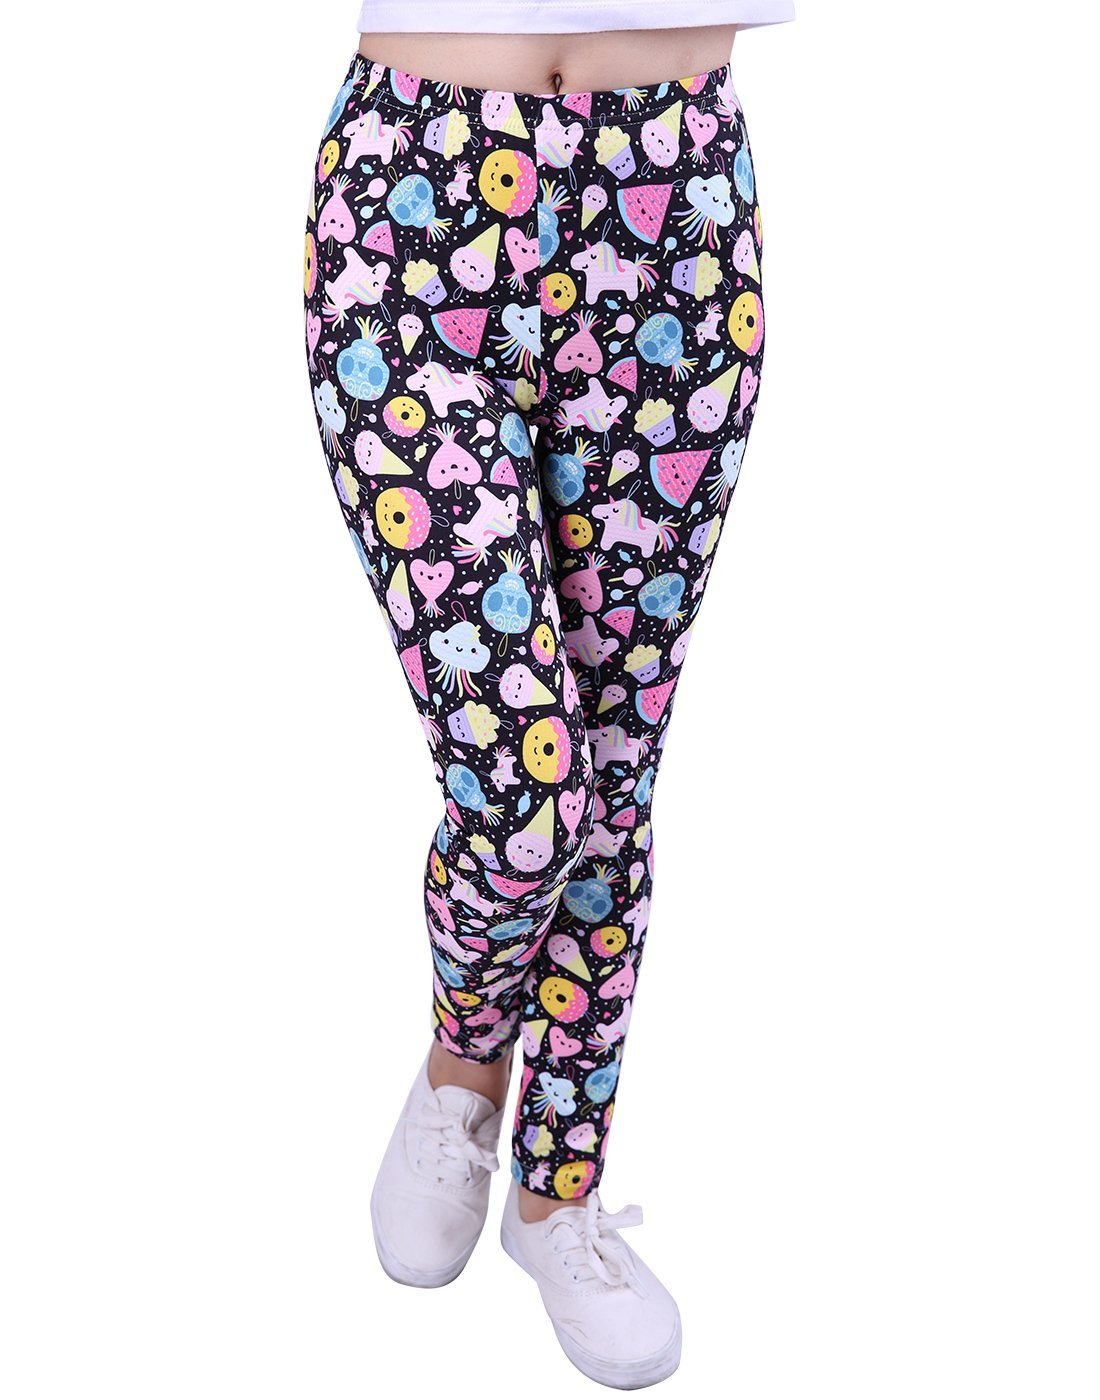 HDE Girl's Ultra Soft Leggings with Print Designs Full Ankle Length Comfy Pants (Party Treats, Medium)